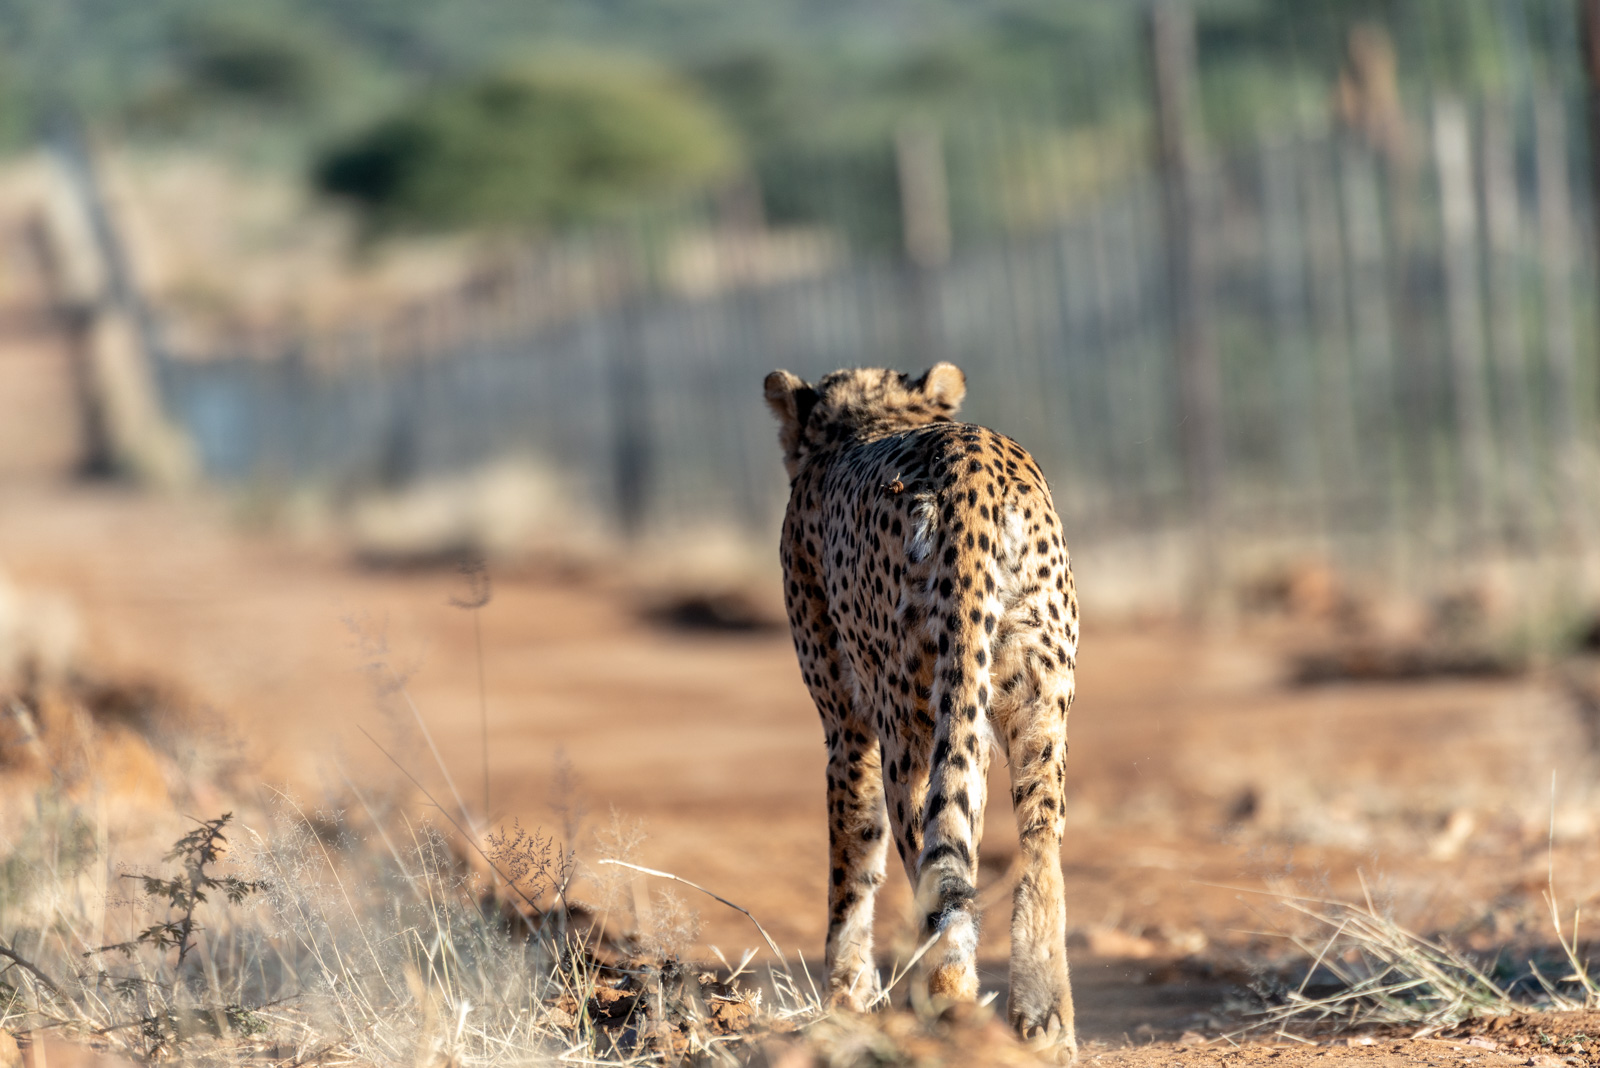 Namibia_Okonjima cheetah walking-0121121.jpg